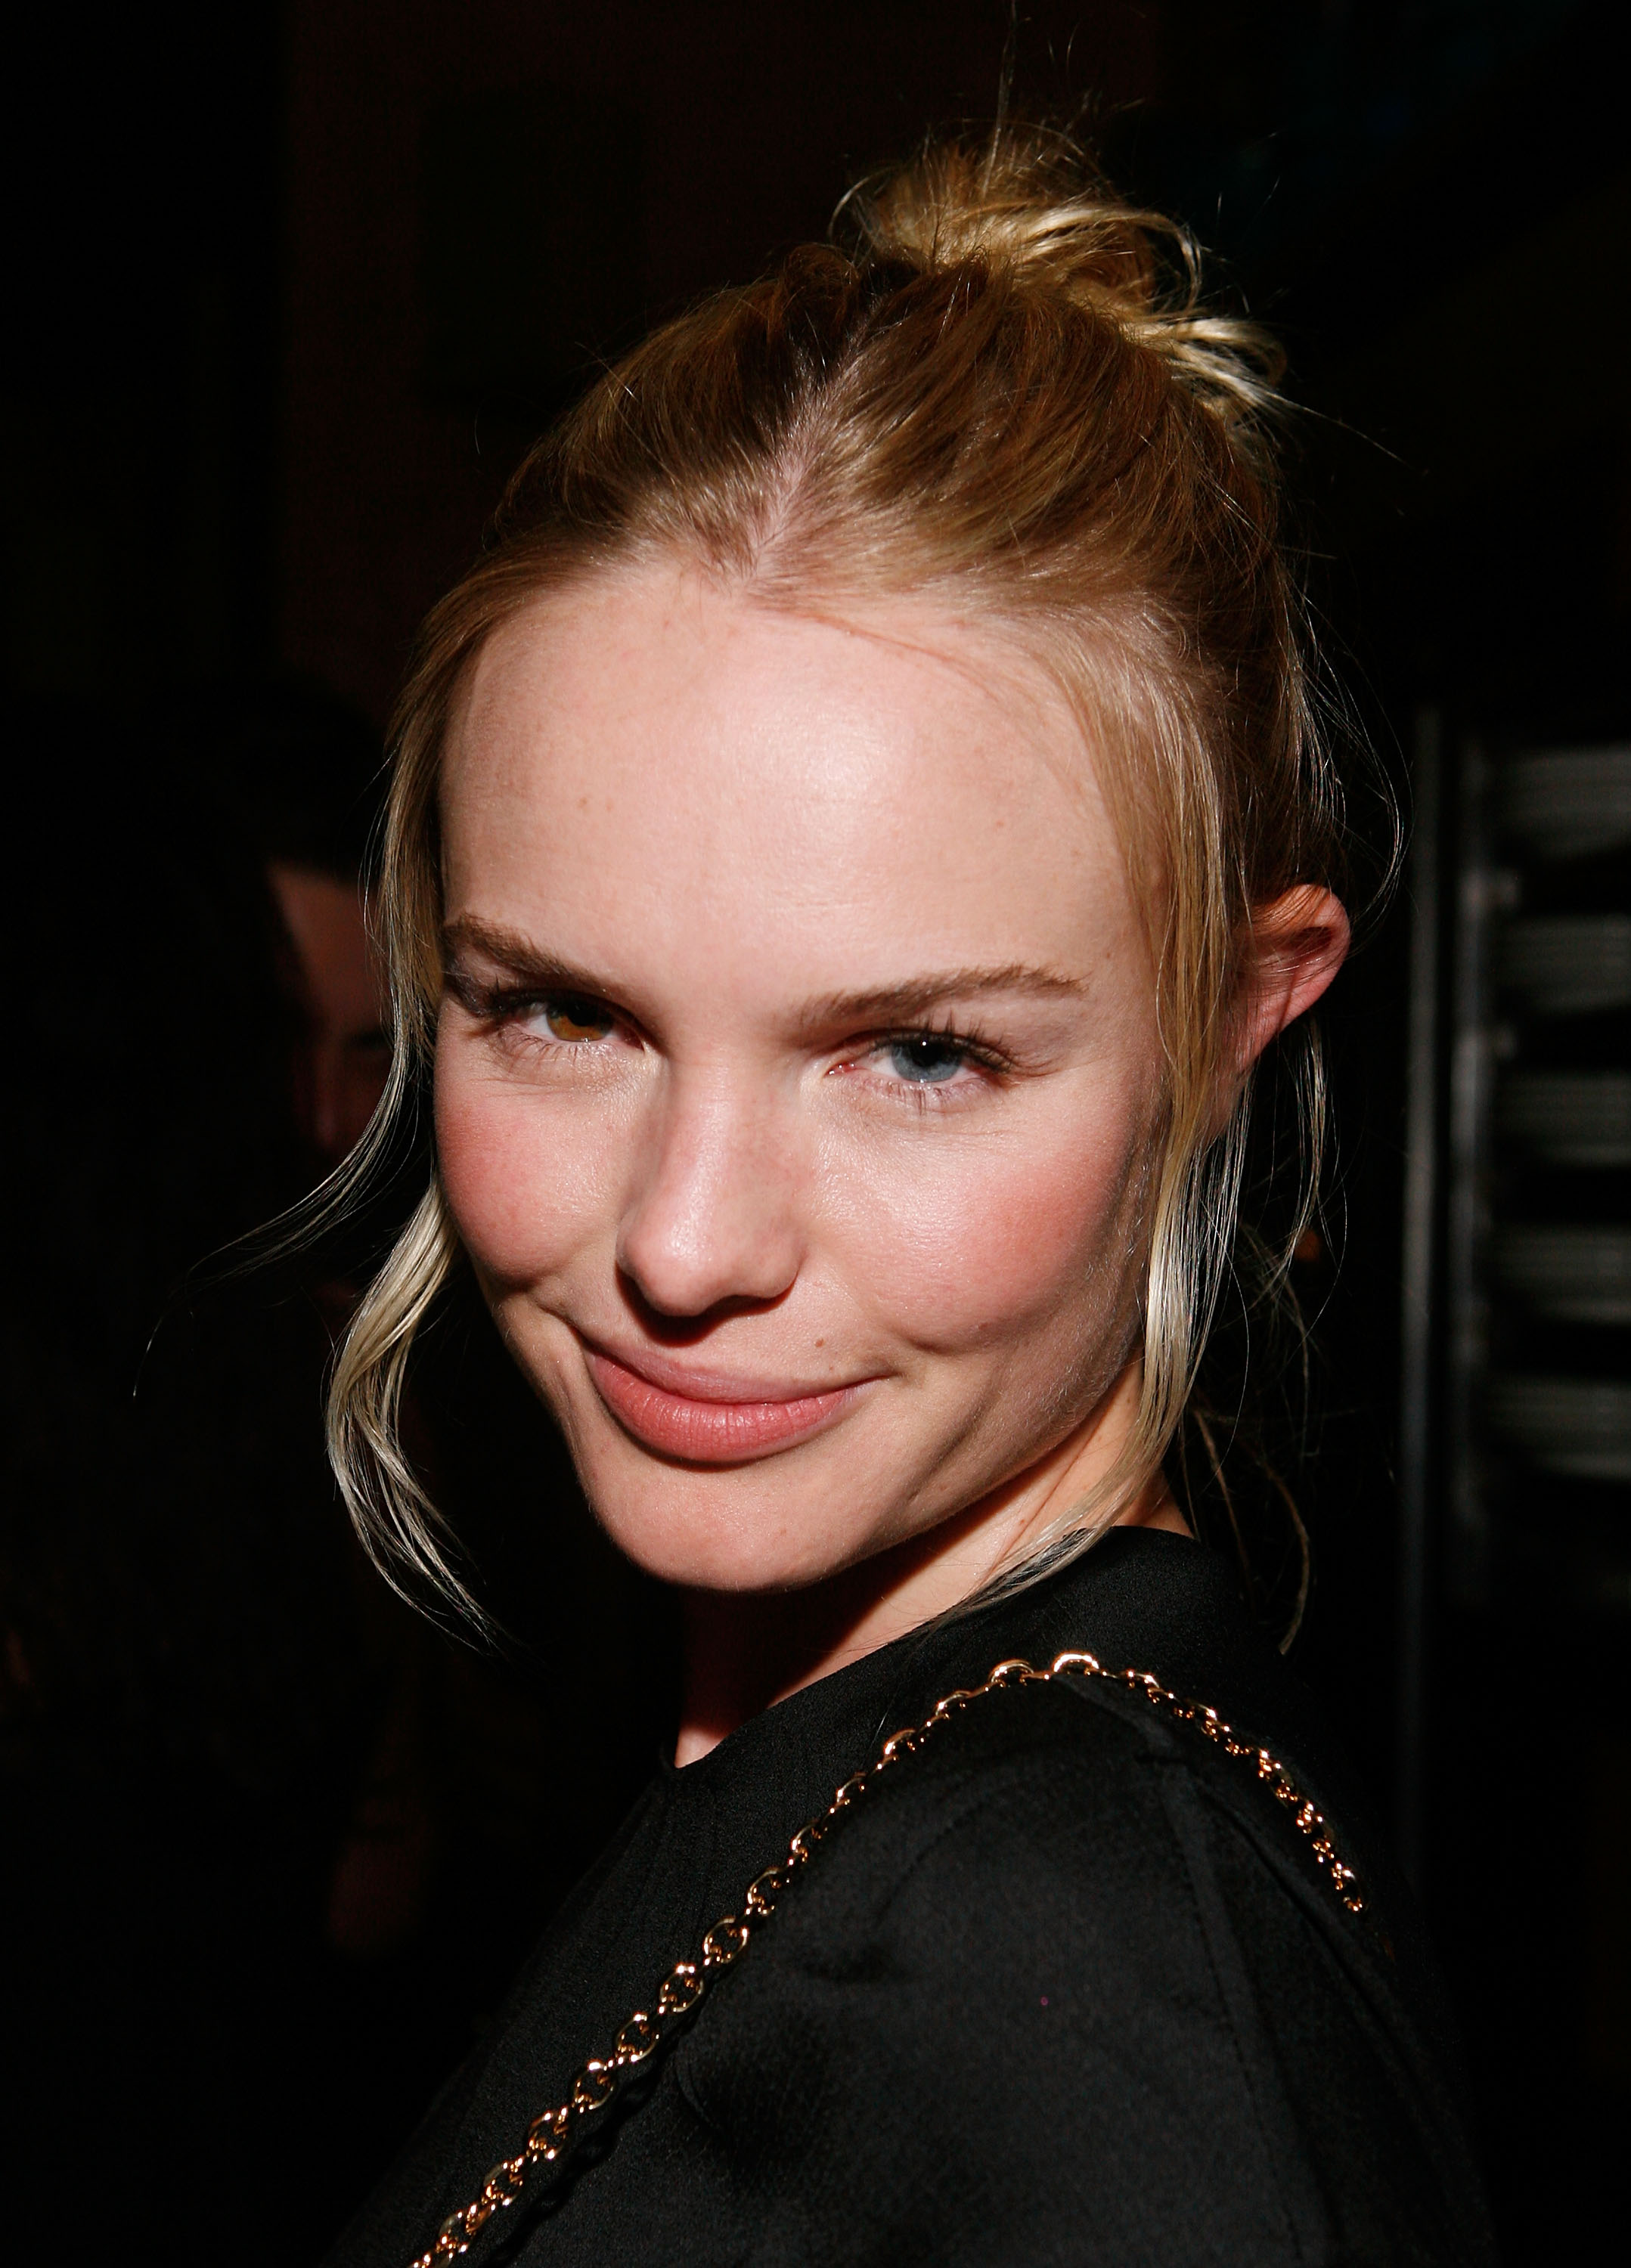 Kate Bosworth Eyes: Kate Bosworth Has Strange Eyes?